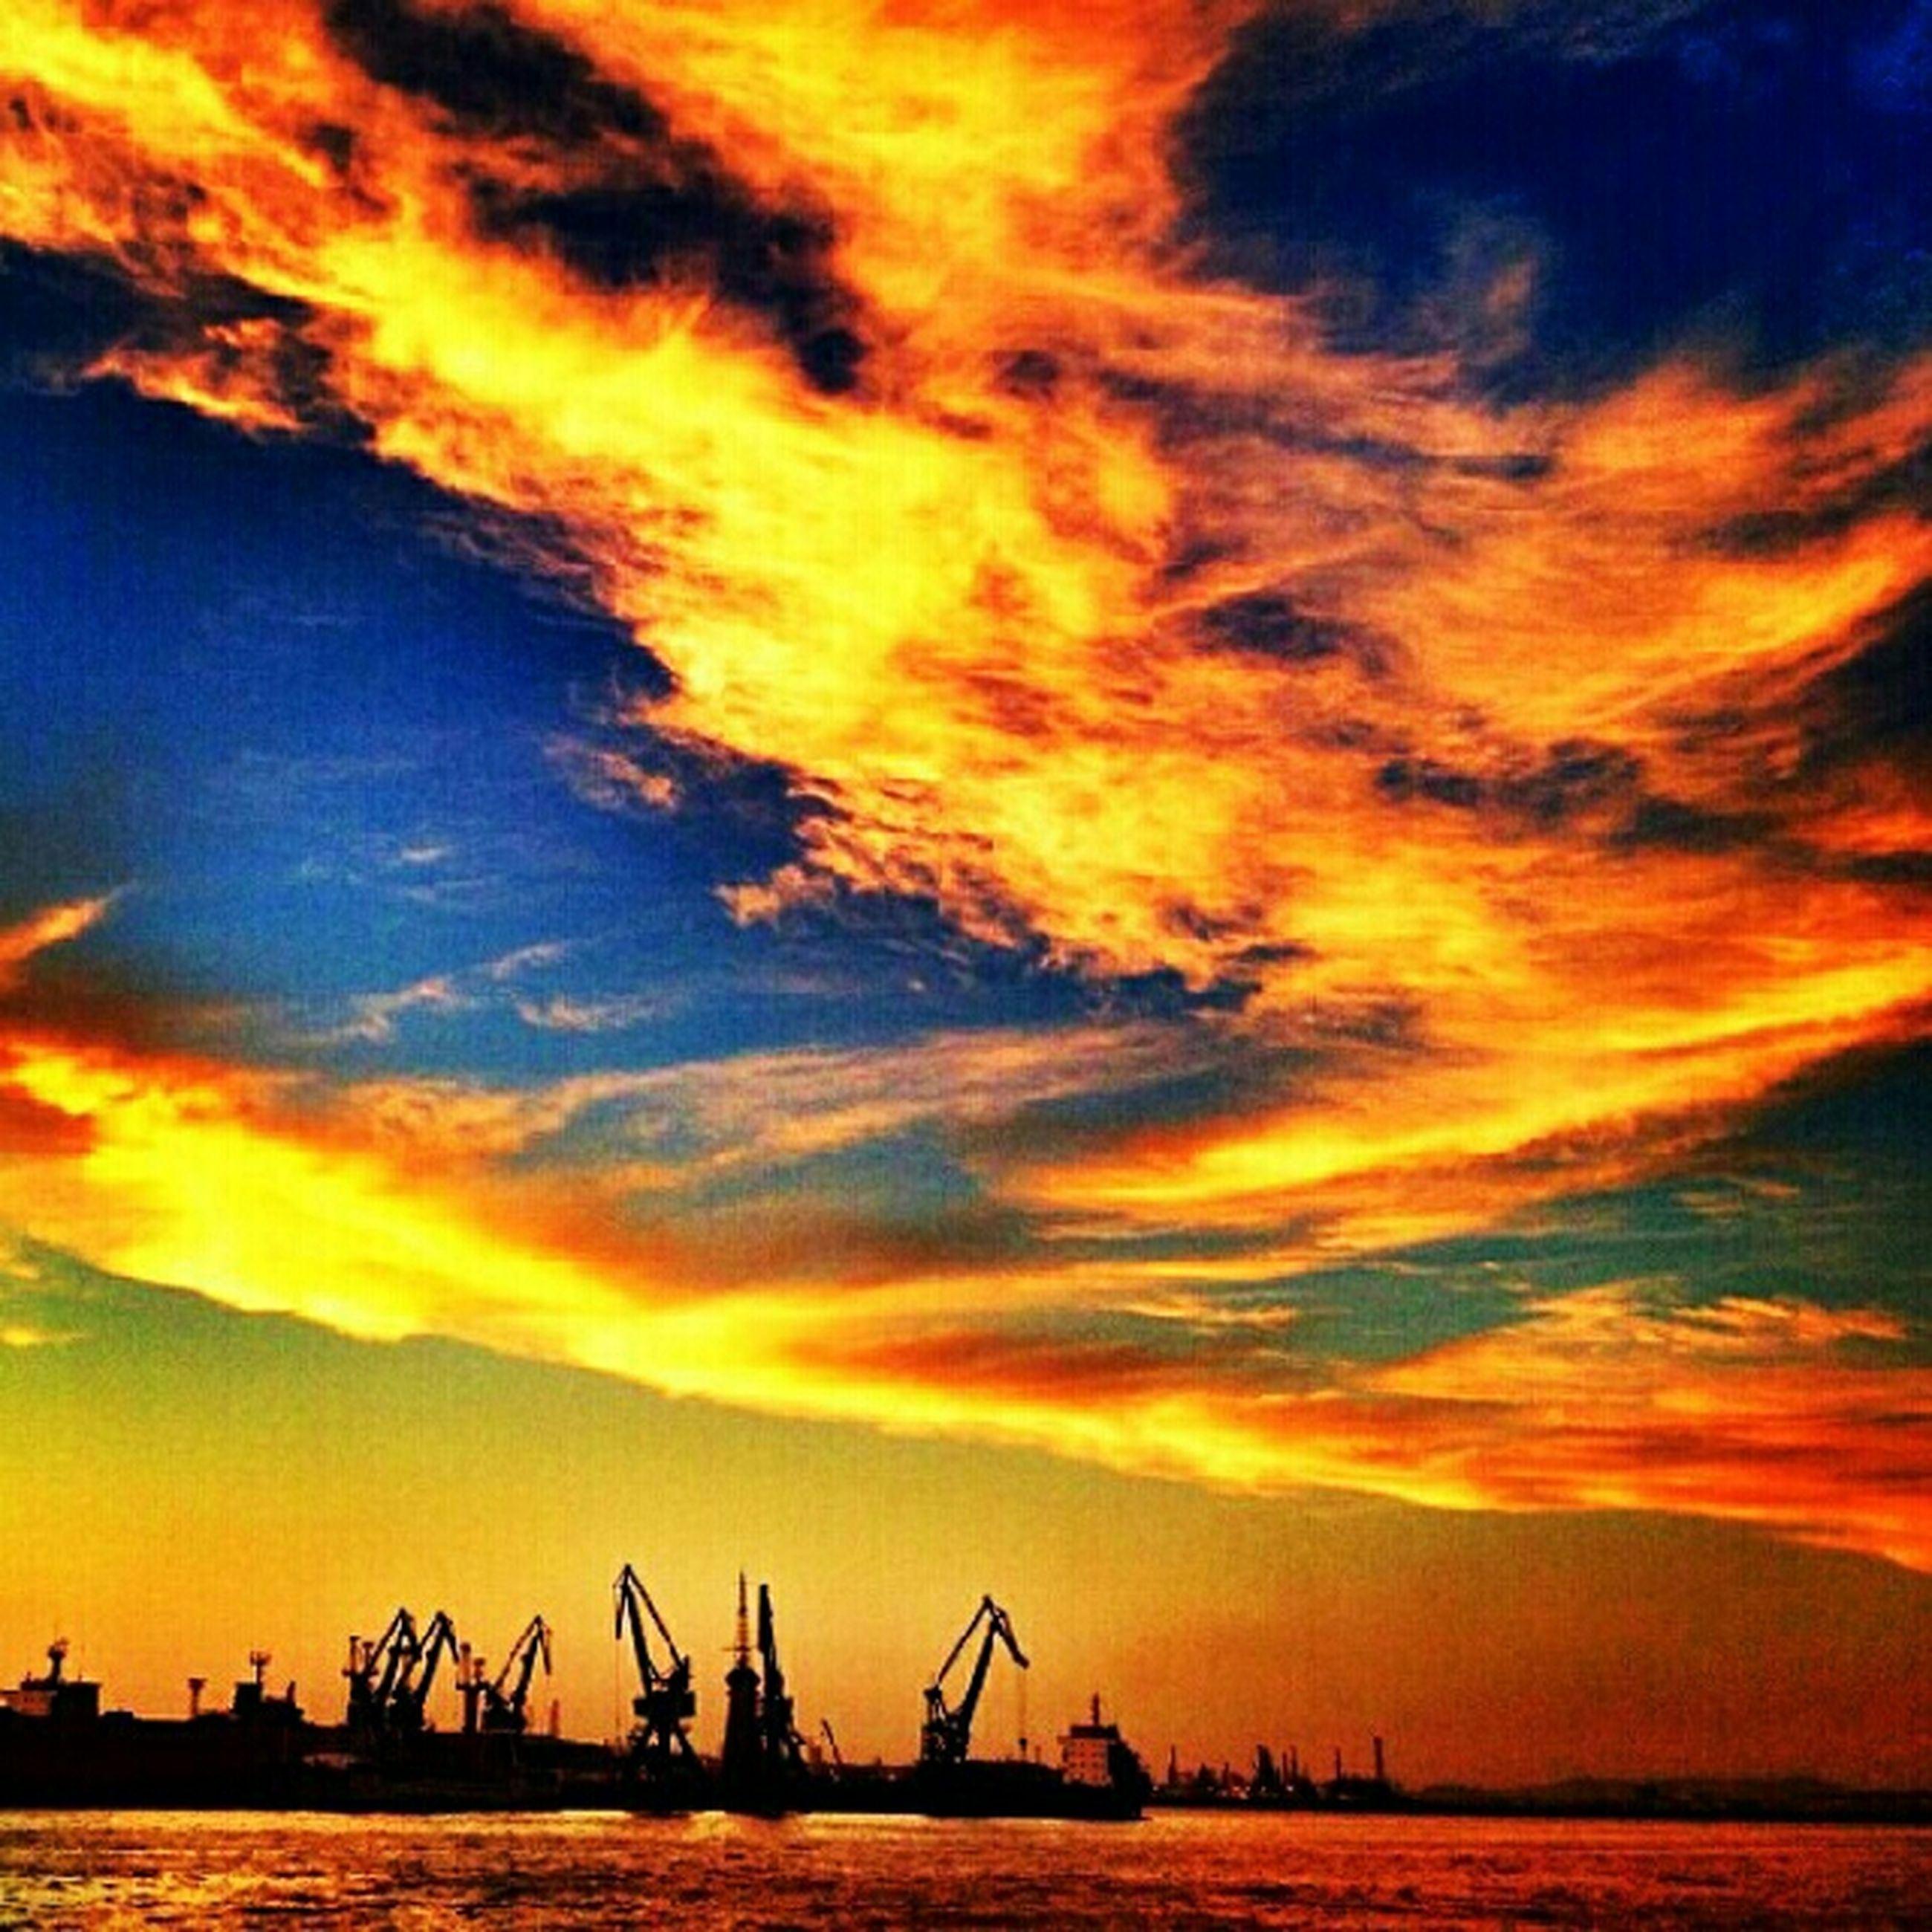 sunset, sky, silhouette, orange color, sea, cloud - sky, water, nautical vessel, beauty in nature, crane - construction machinery, dramatic sky, scenics, cloud, nature, tranquility, tranquil scene, waterfront, boat, harbor, transportation